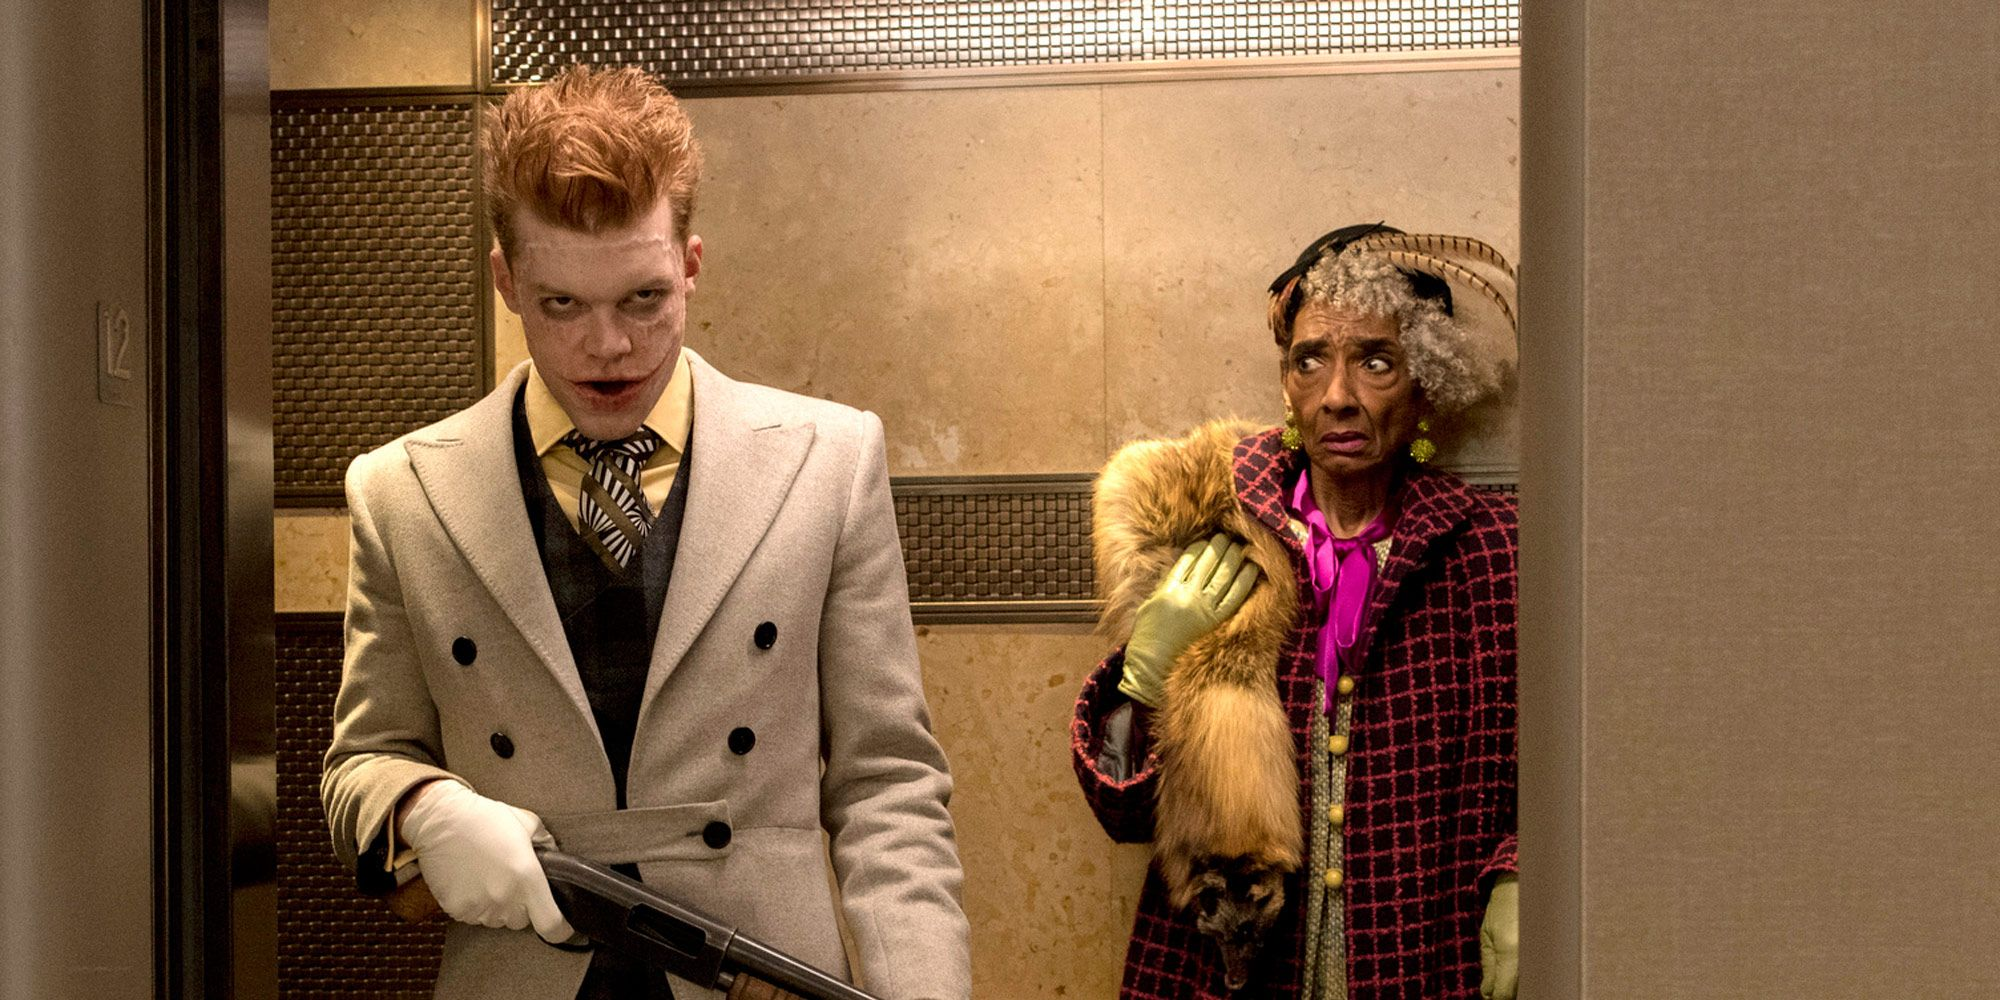 Cameron Monaghan, Jerome, Gotham, Season 4, Episode 17, 'Mandatory Brunch Meeting'